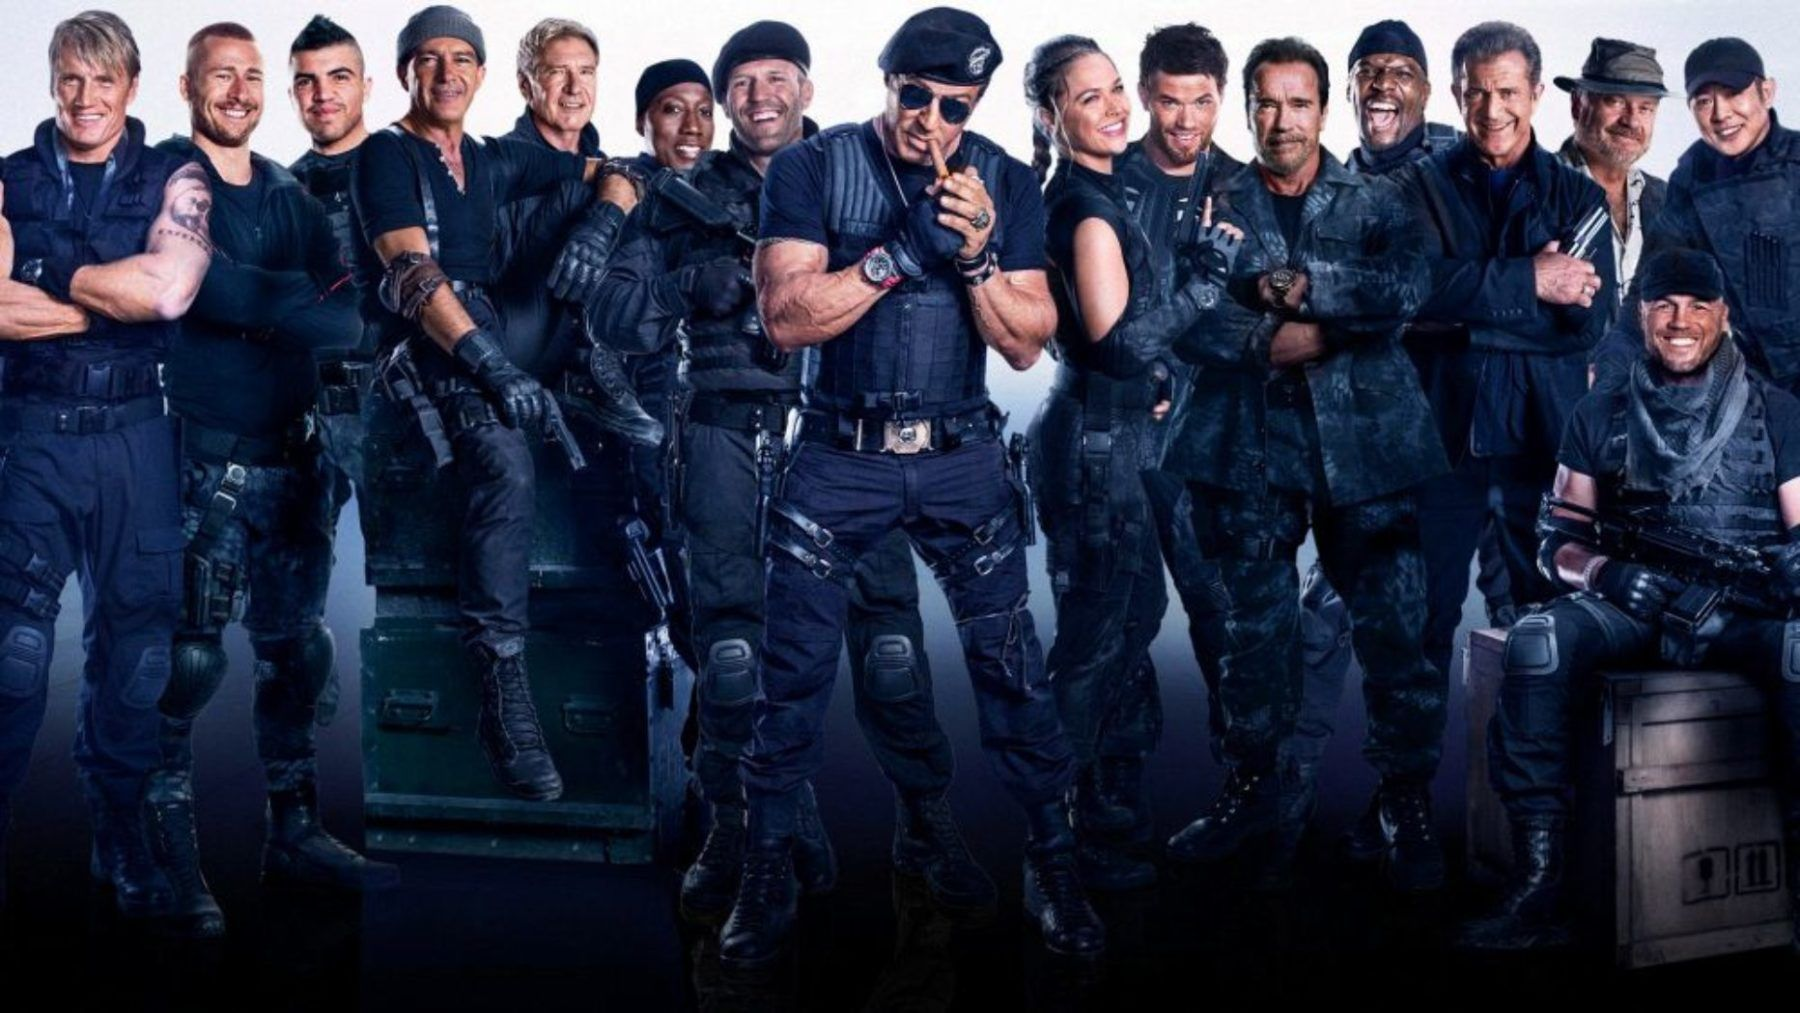 The Expendables 3 Scheduled Release Date 08 15 14 Not Really Interested In This One But The Hubby Is So Mo Expendables Movie The Expendables Movie Posters